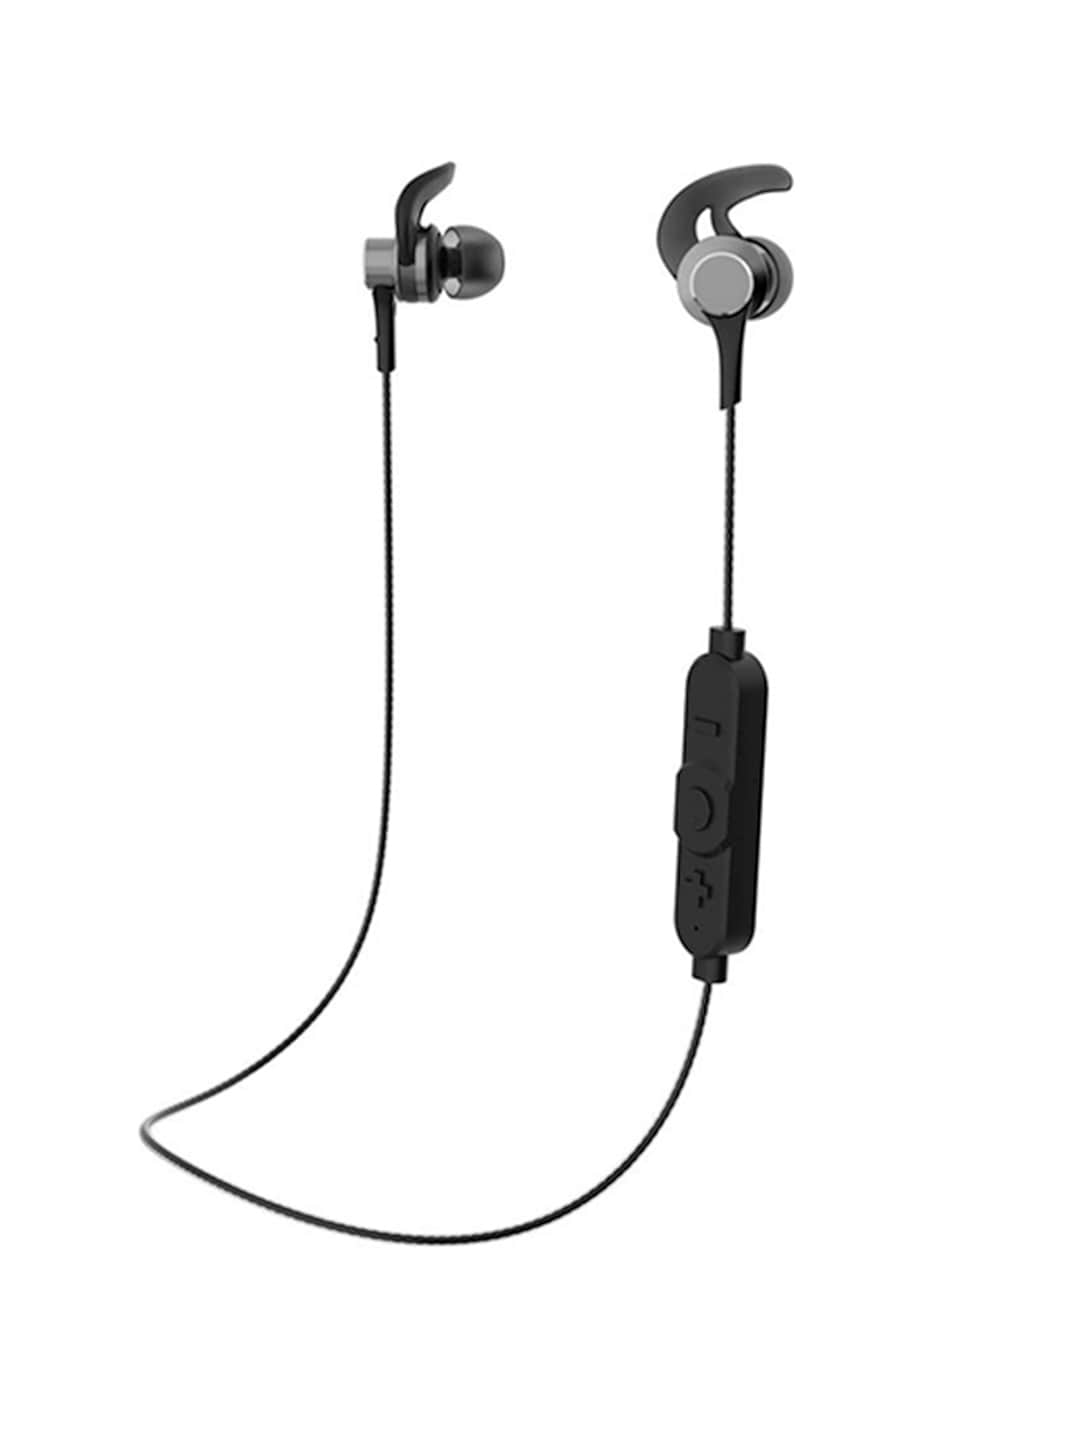 BUy Flipkart SmartBuy Black Wireless Bluetooth In-Ear Earphones With Mic At Best Price